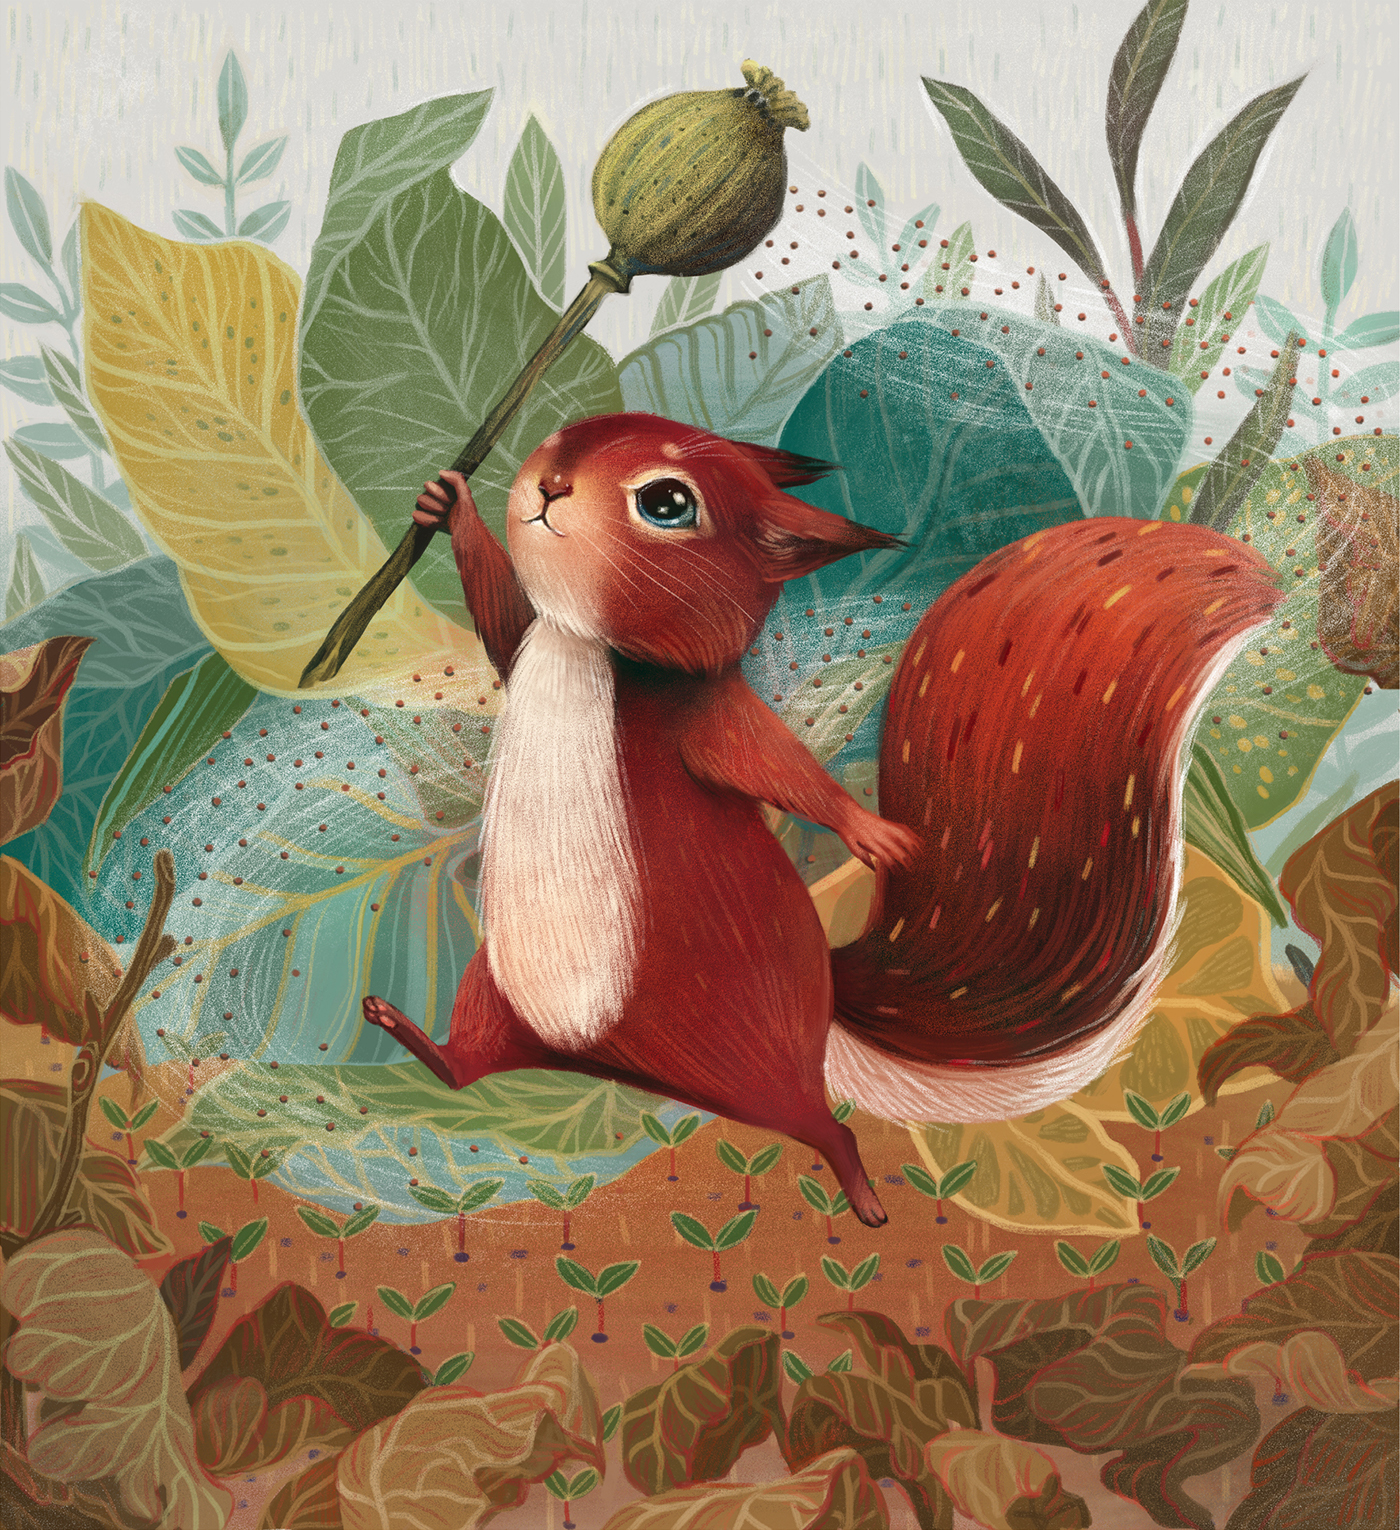 Perrin and the Peculiar Poppy Pod on Behance